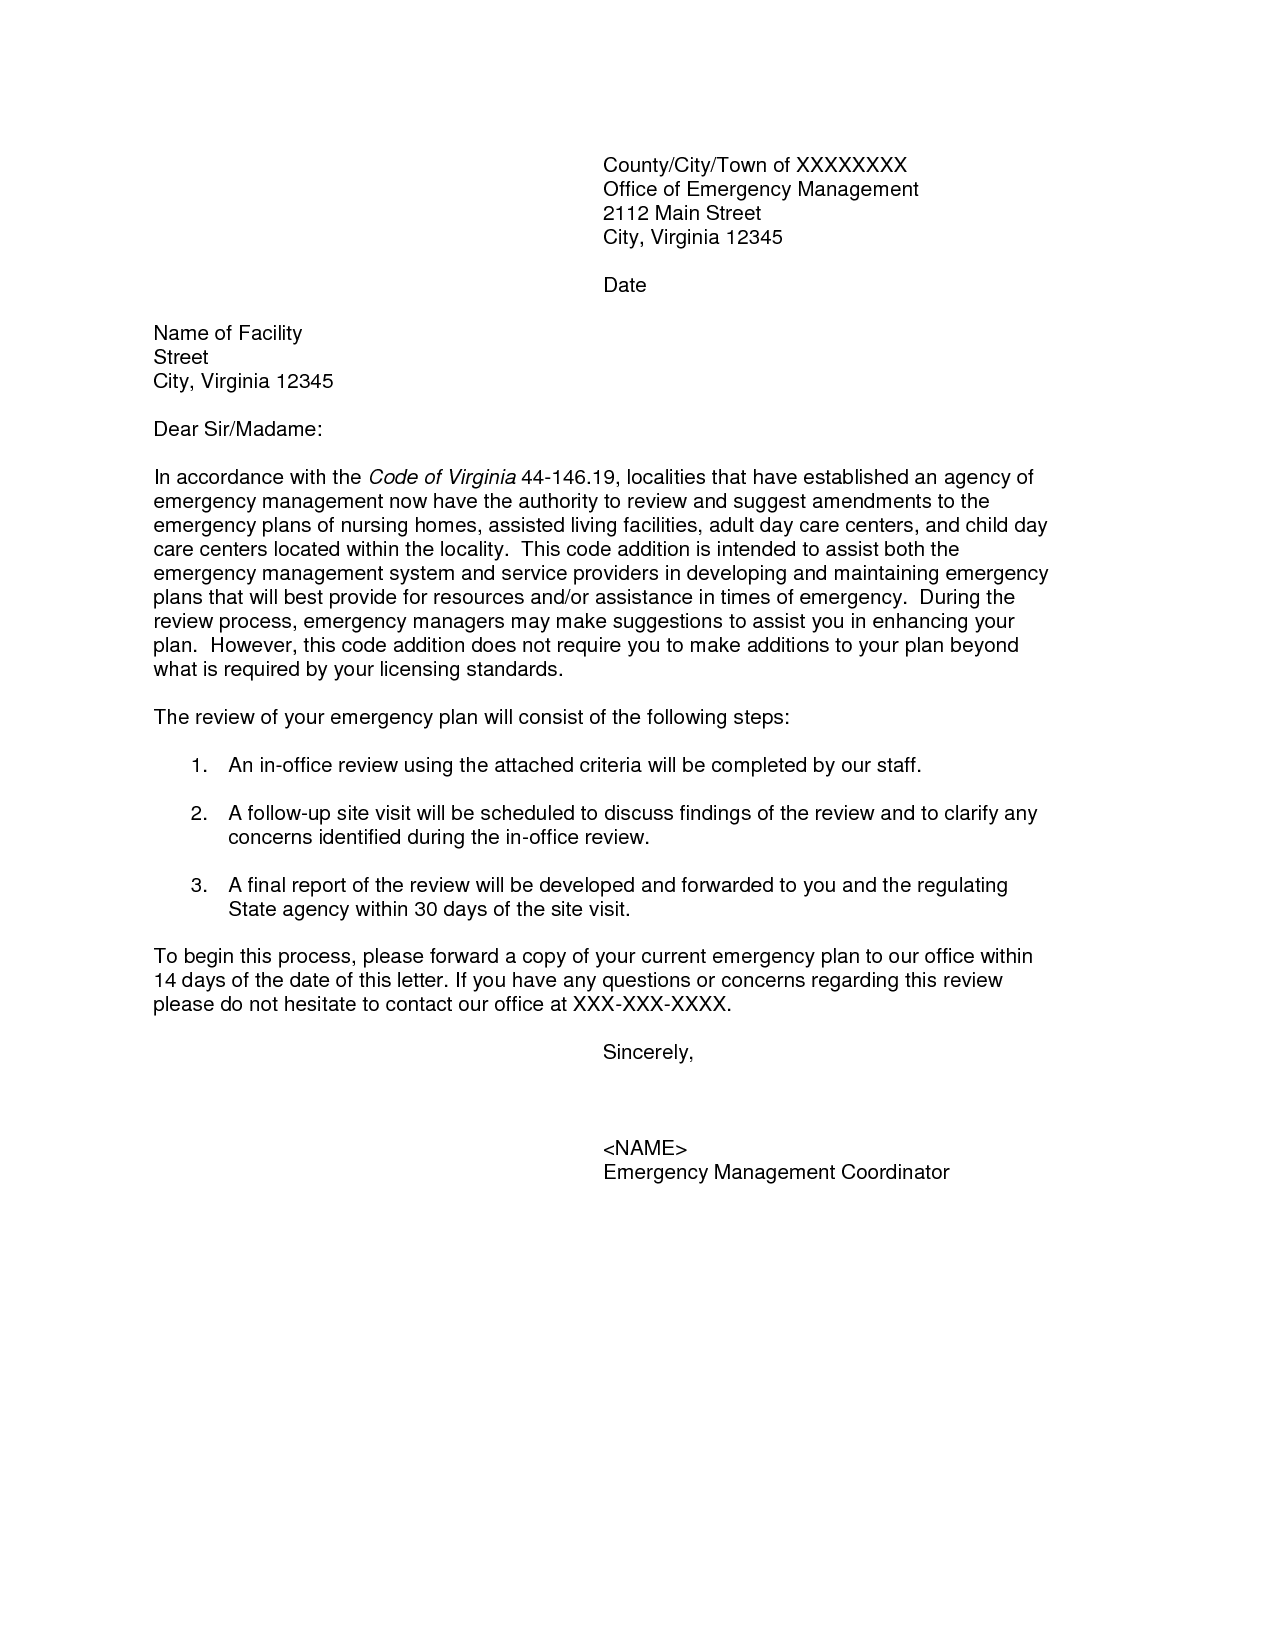 Sample Business Letter Excel Examples of Reference Letters Request – Business Letter Example